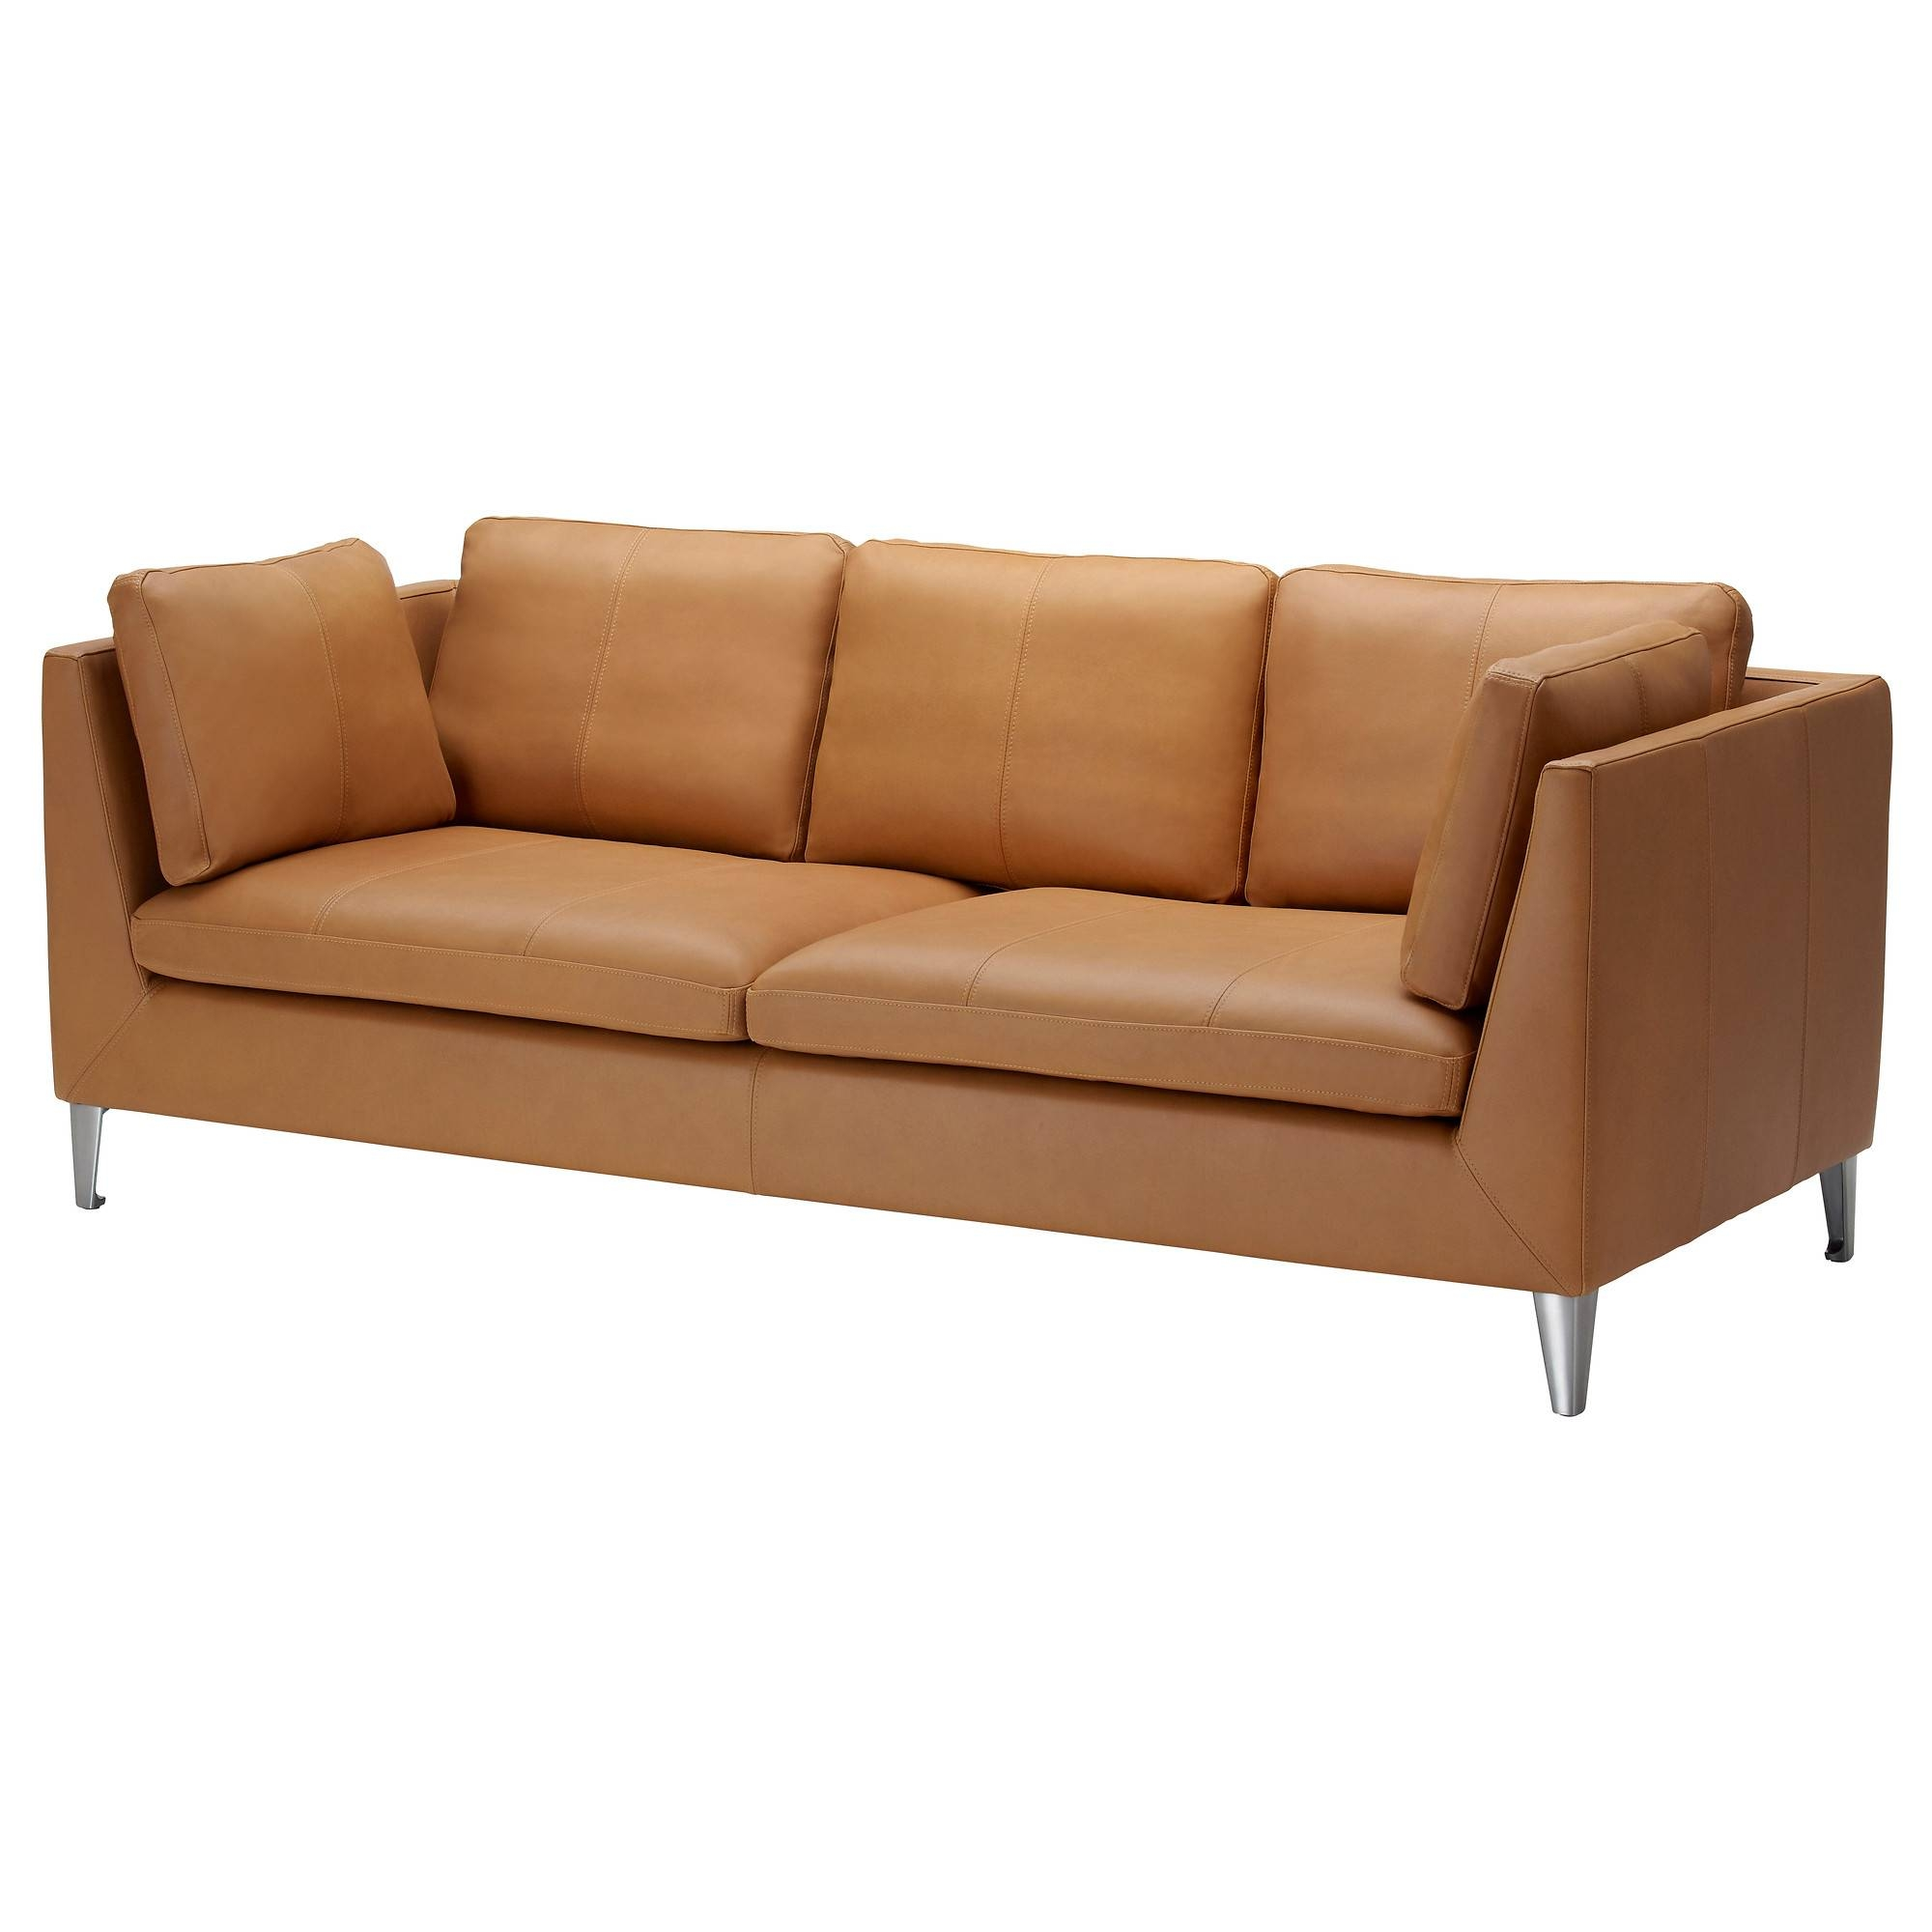 Stockholm Three-Seat Sofa Seglora Natural - Ikea pertaining to Sofas (Image 12 of 15)